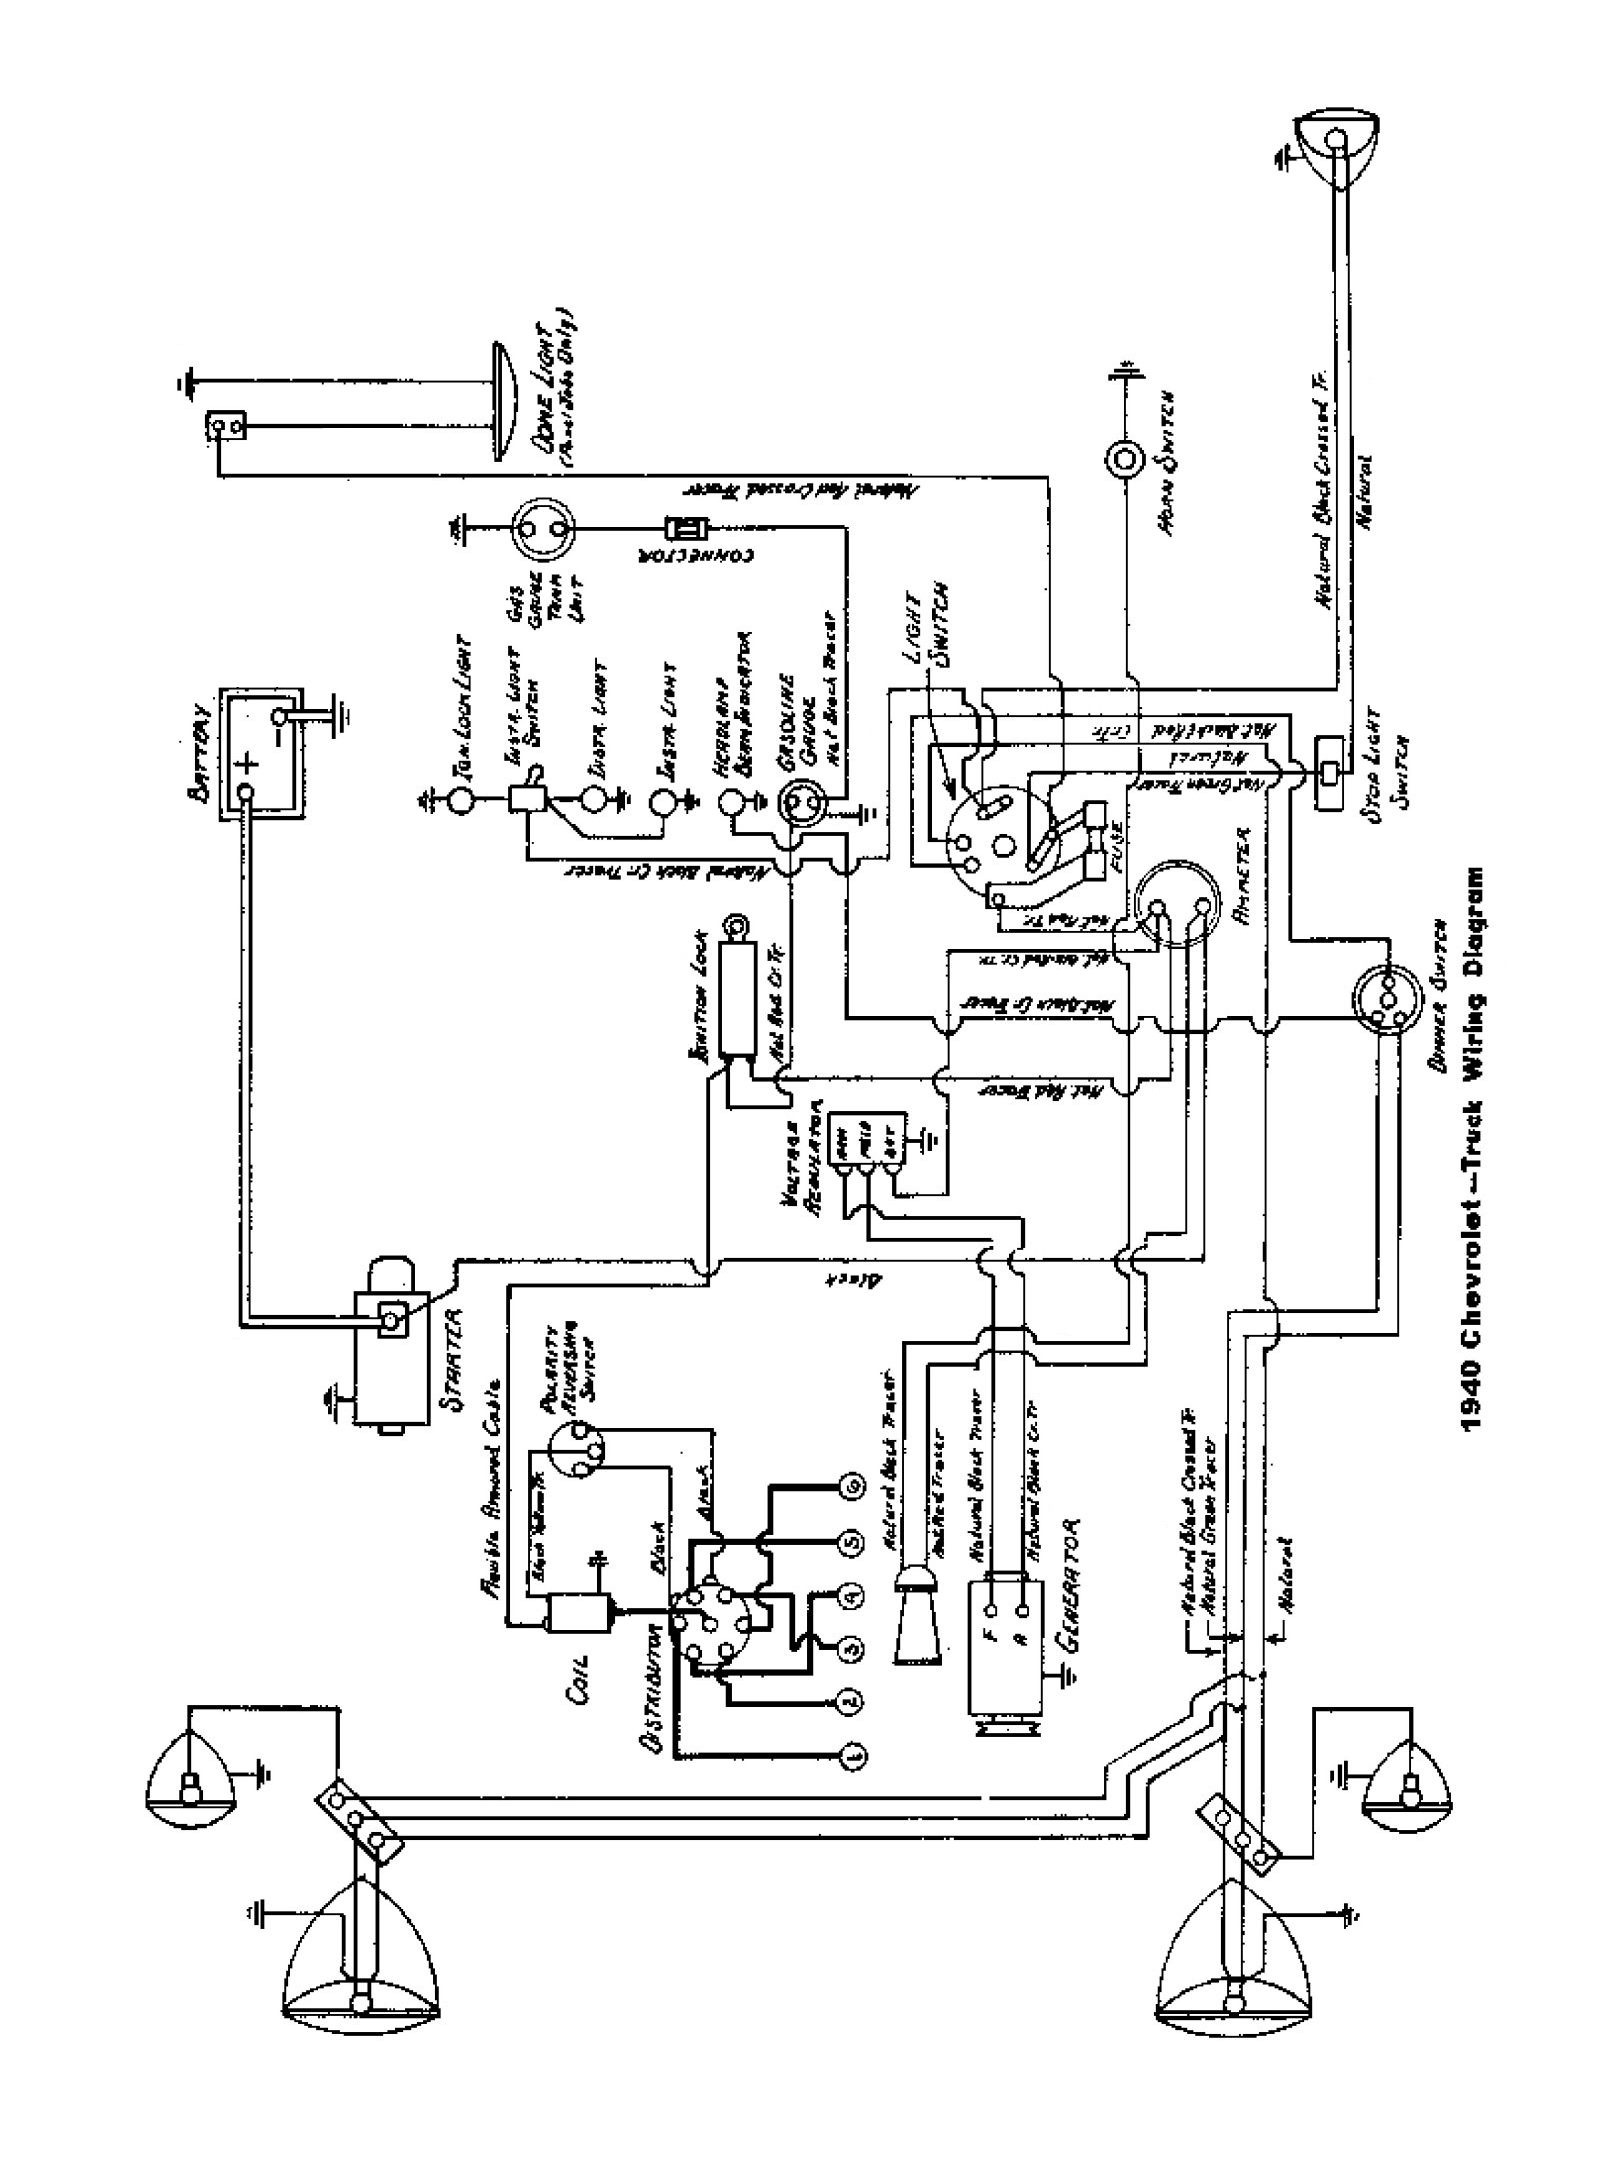 1947 ford wiring harness wiring diagram detailed1947 ford wiring harness wiring diagram database 1941 ford wiring harness 1937 ford pickup wiring www